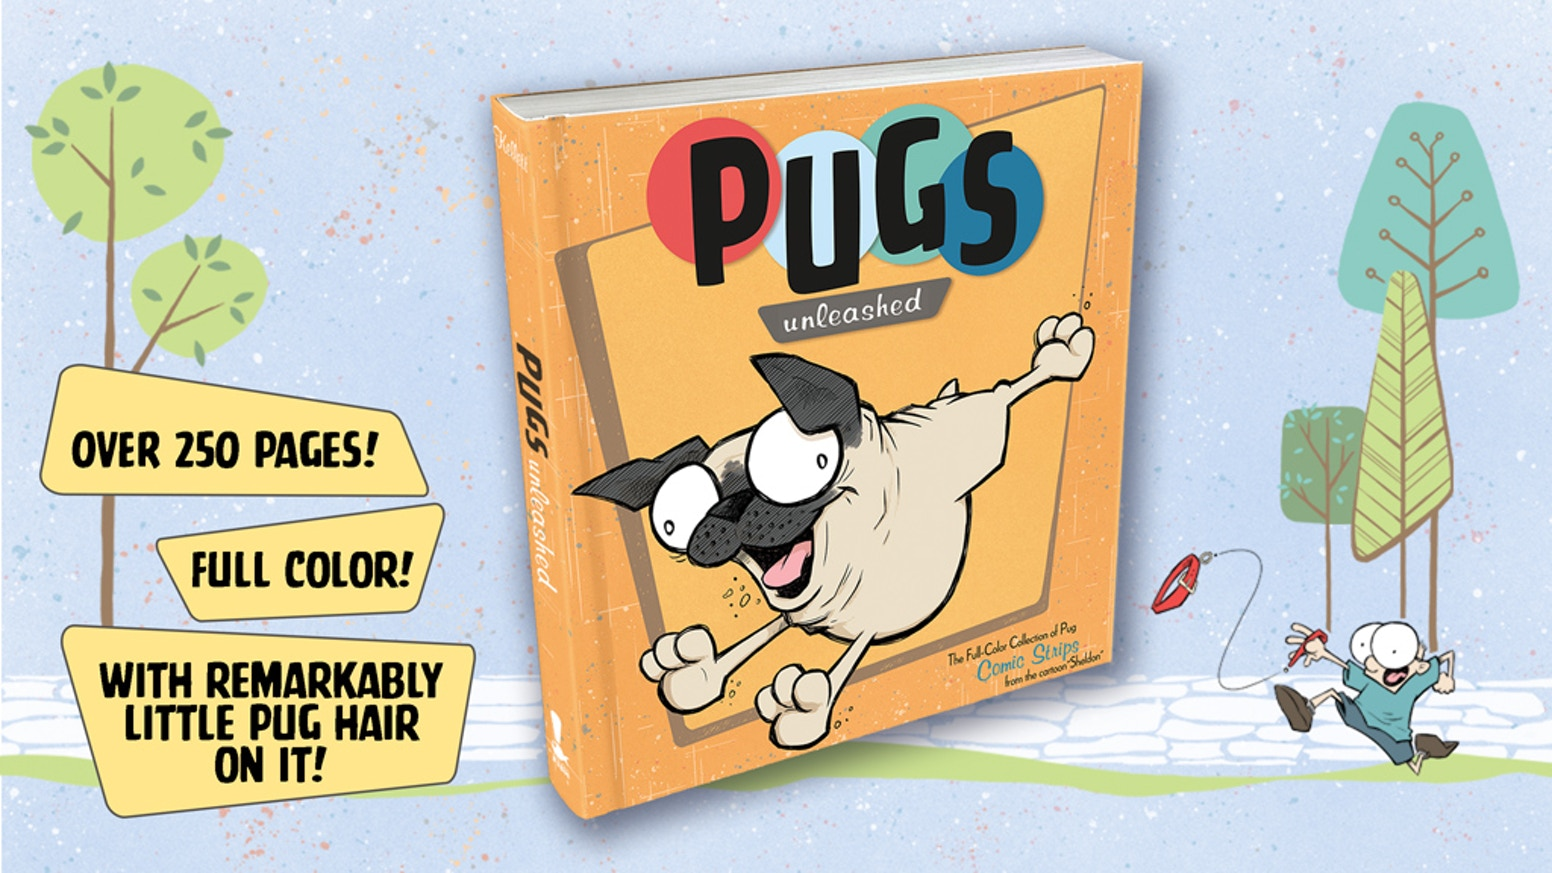 250+ pages of full-color pug comic strips!